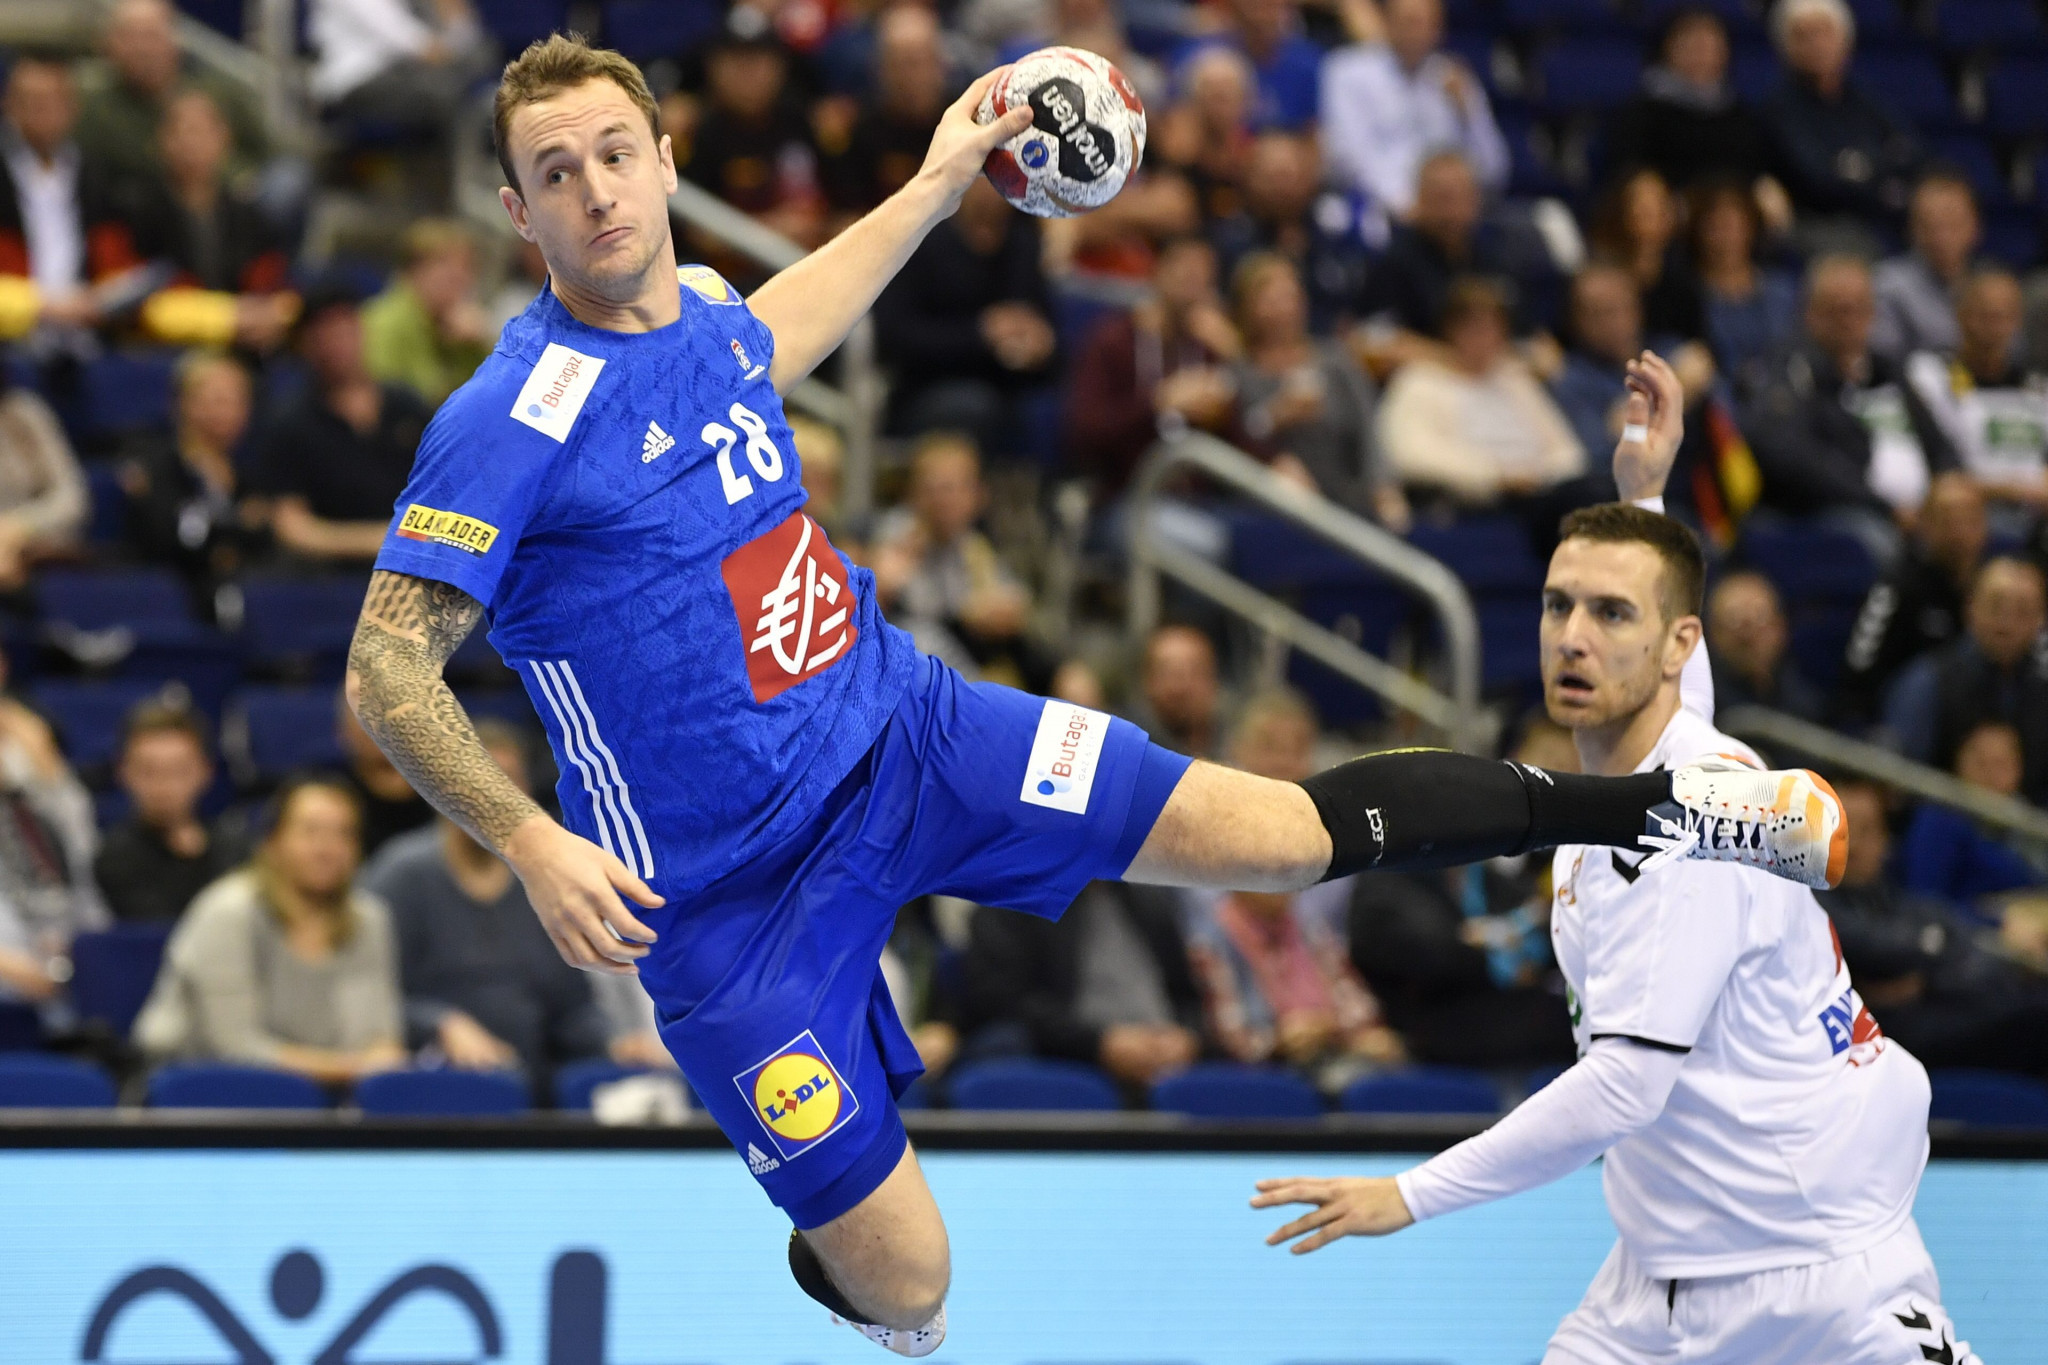 Defending champions France defeated Serbia 32-21 in the Group A clash at the IHF Men's Handball World Championship ©Getty Images